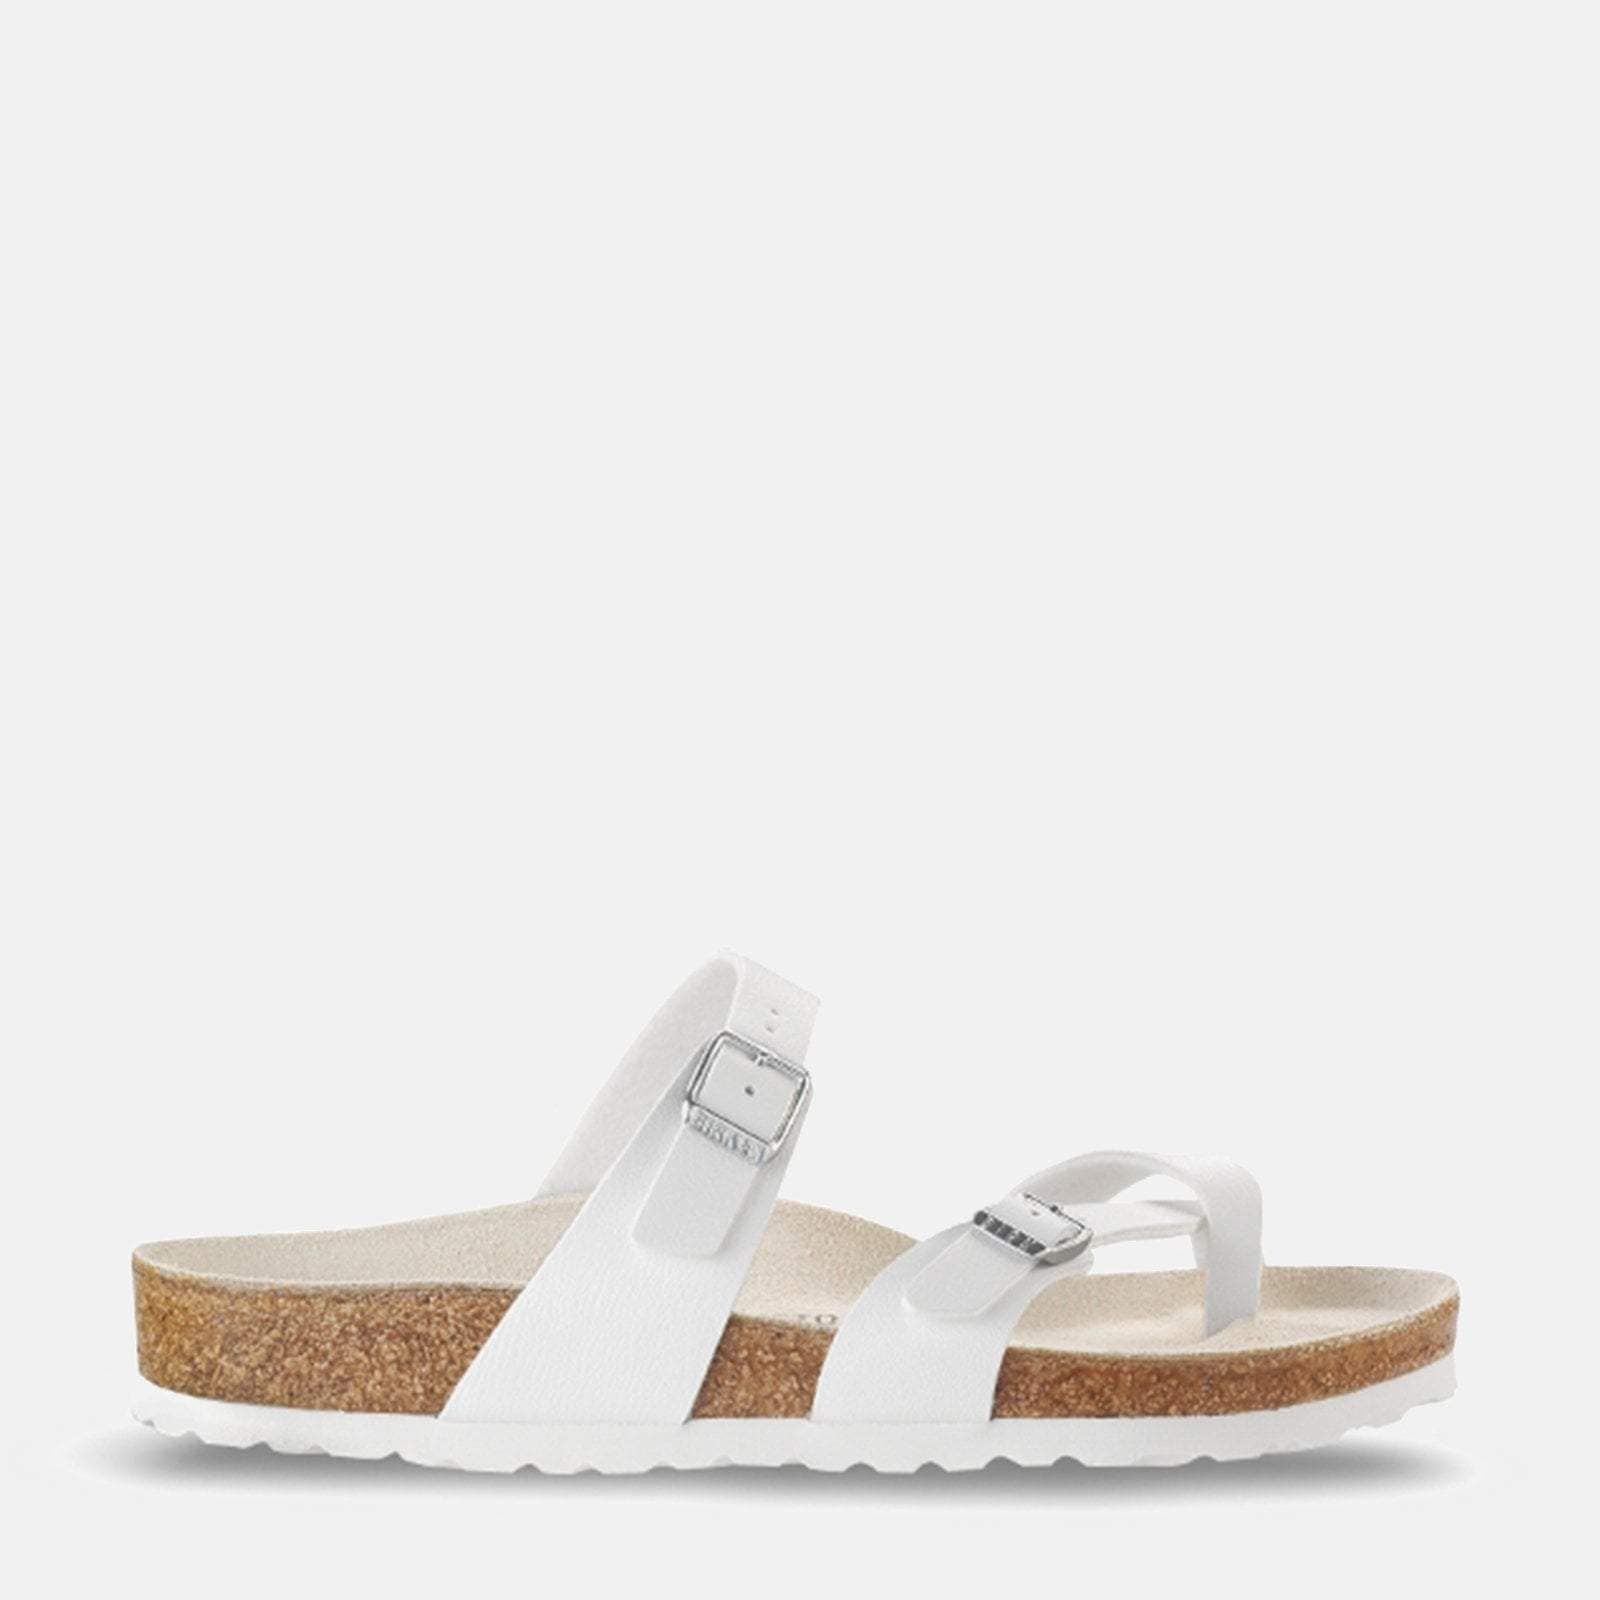 Birkenstock Footwear Mayari Regular Fit White 071051